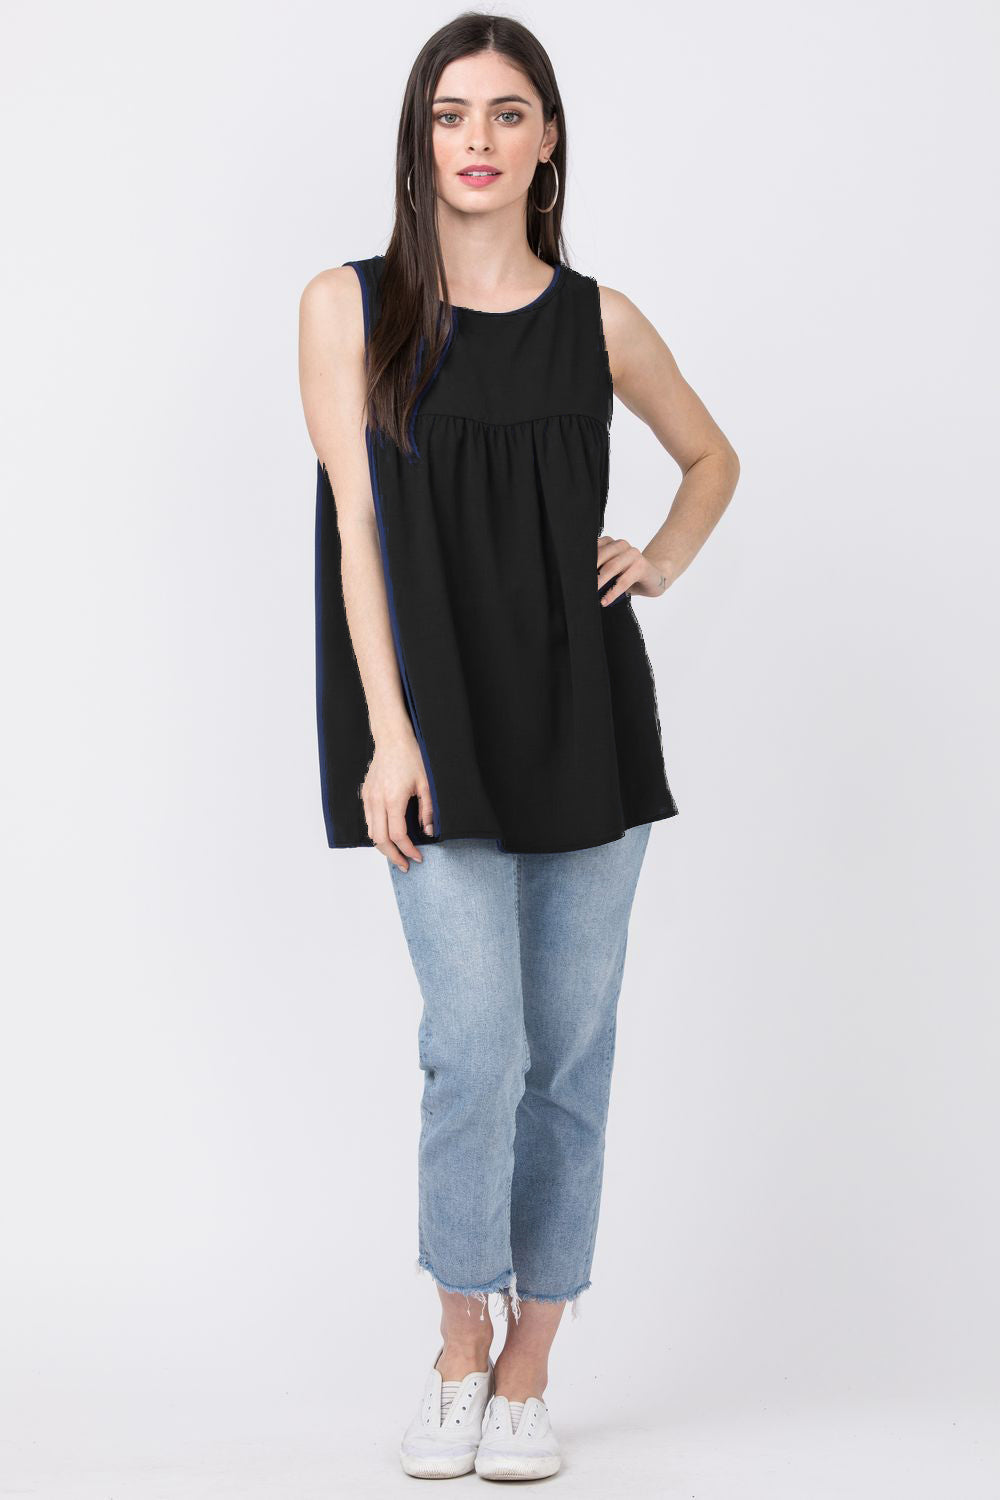 Solid Black Sleeveless Empire Waist Tunic